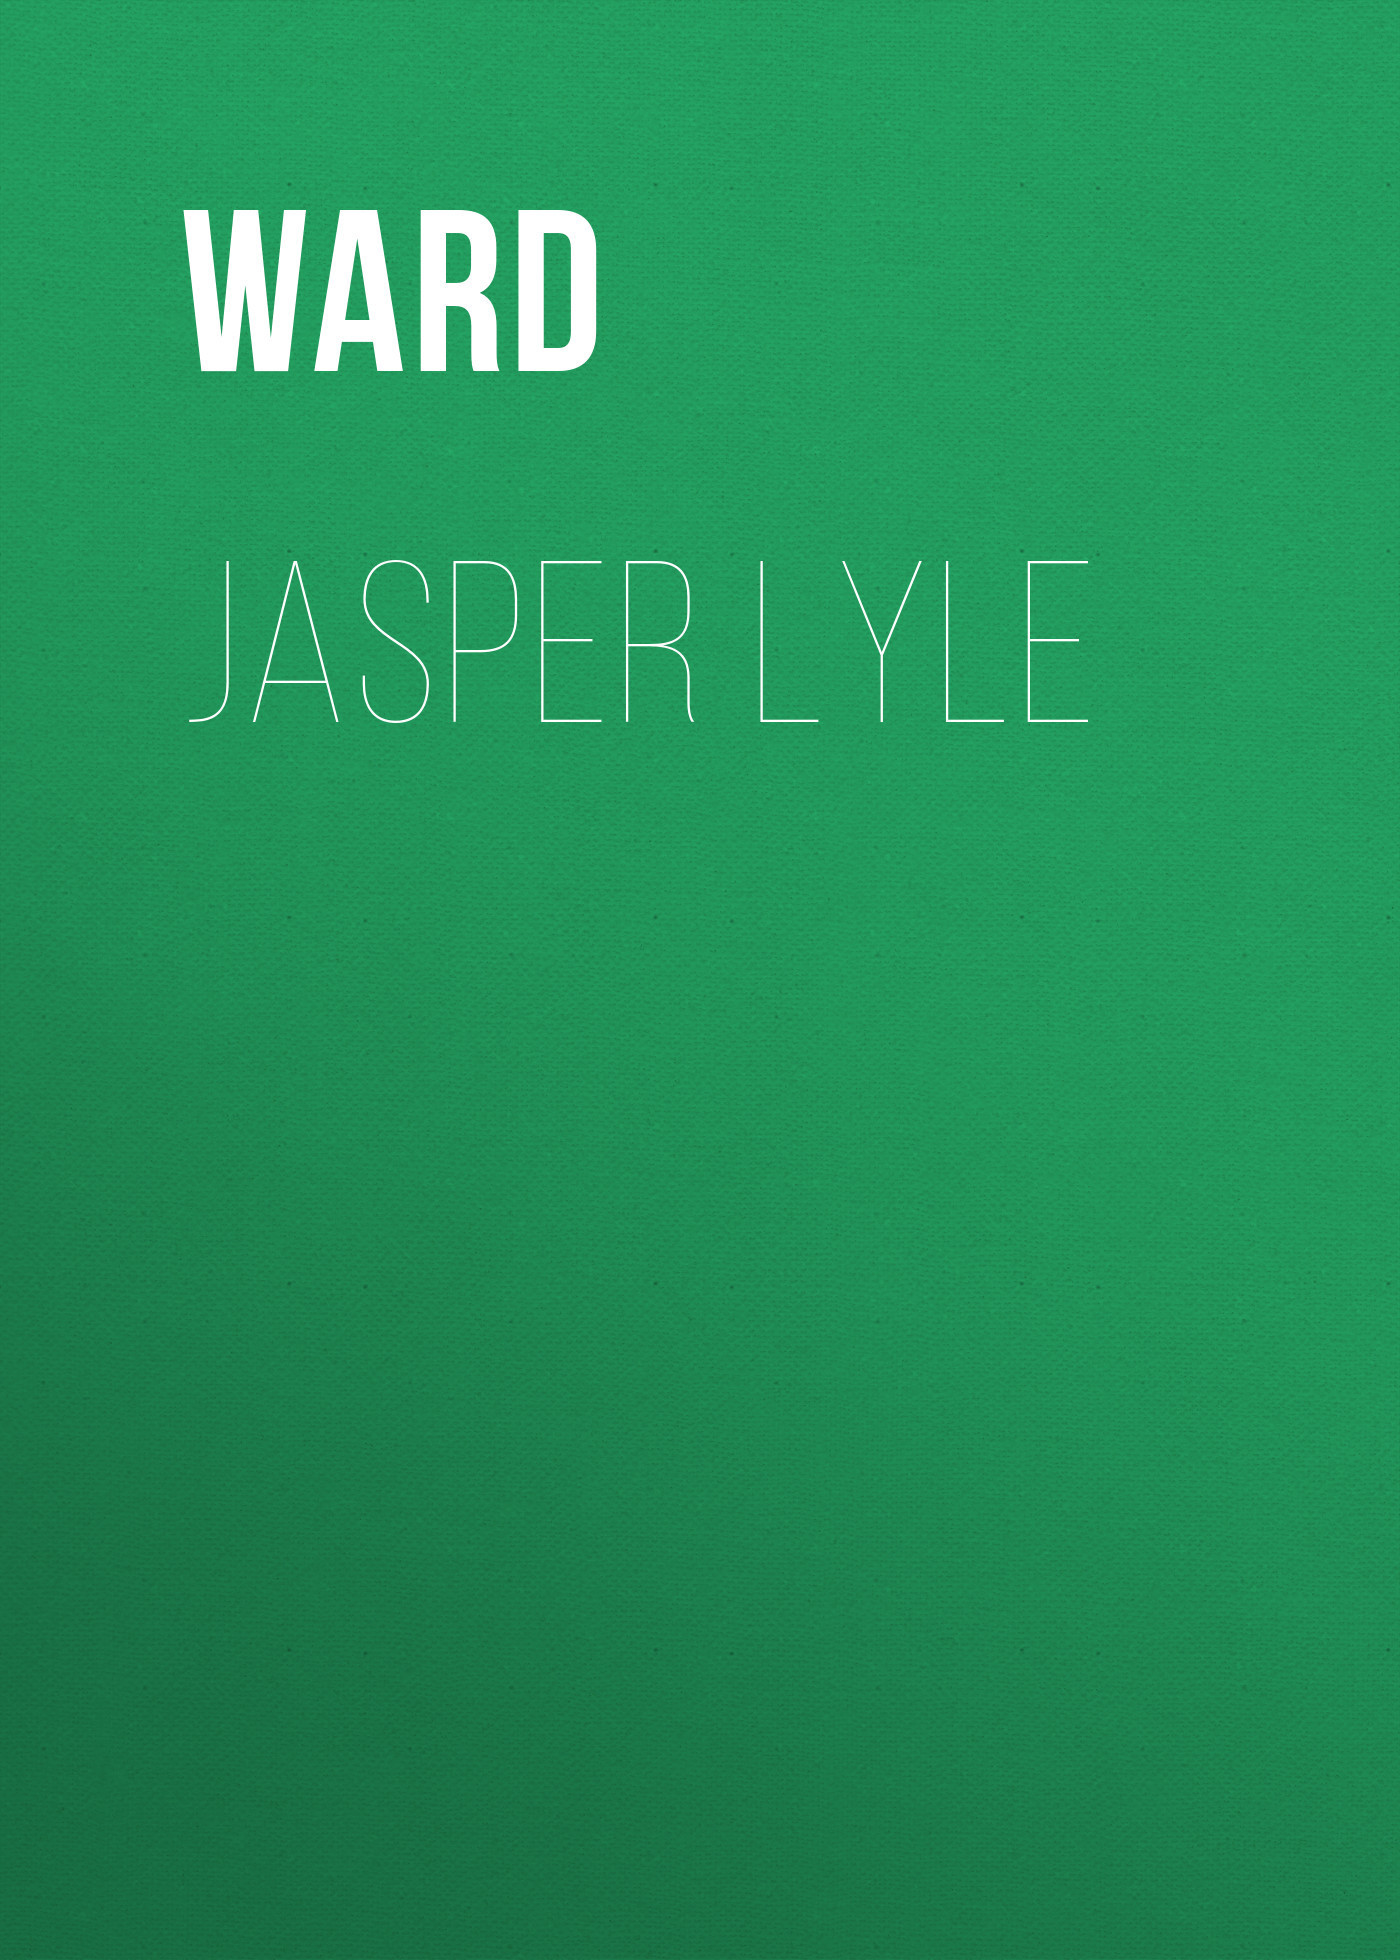 Ward Jasper Lyle watch and ward